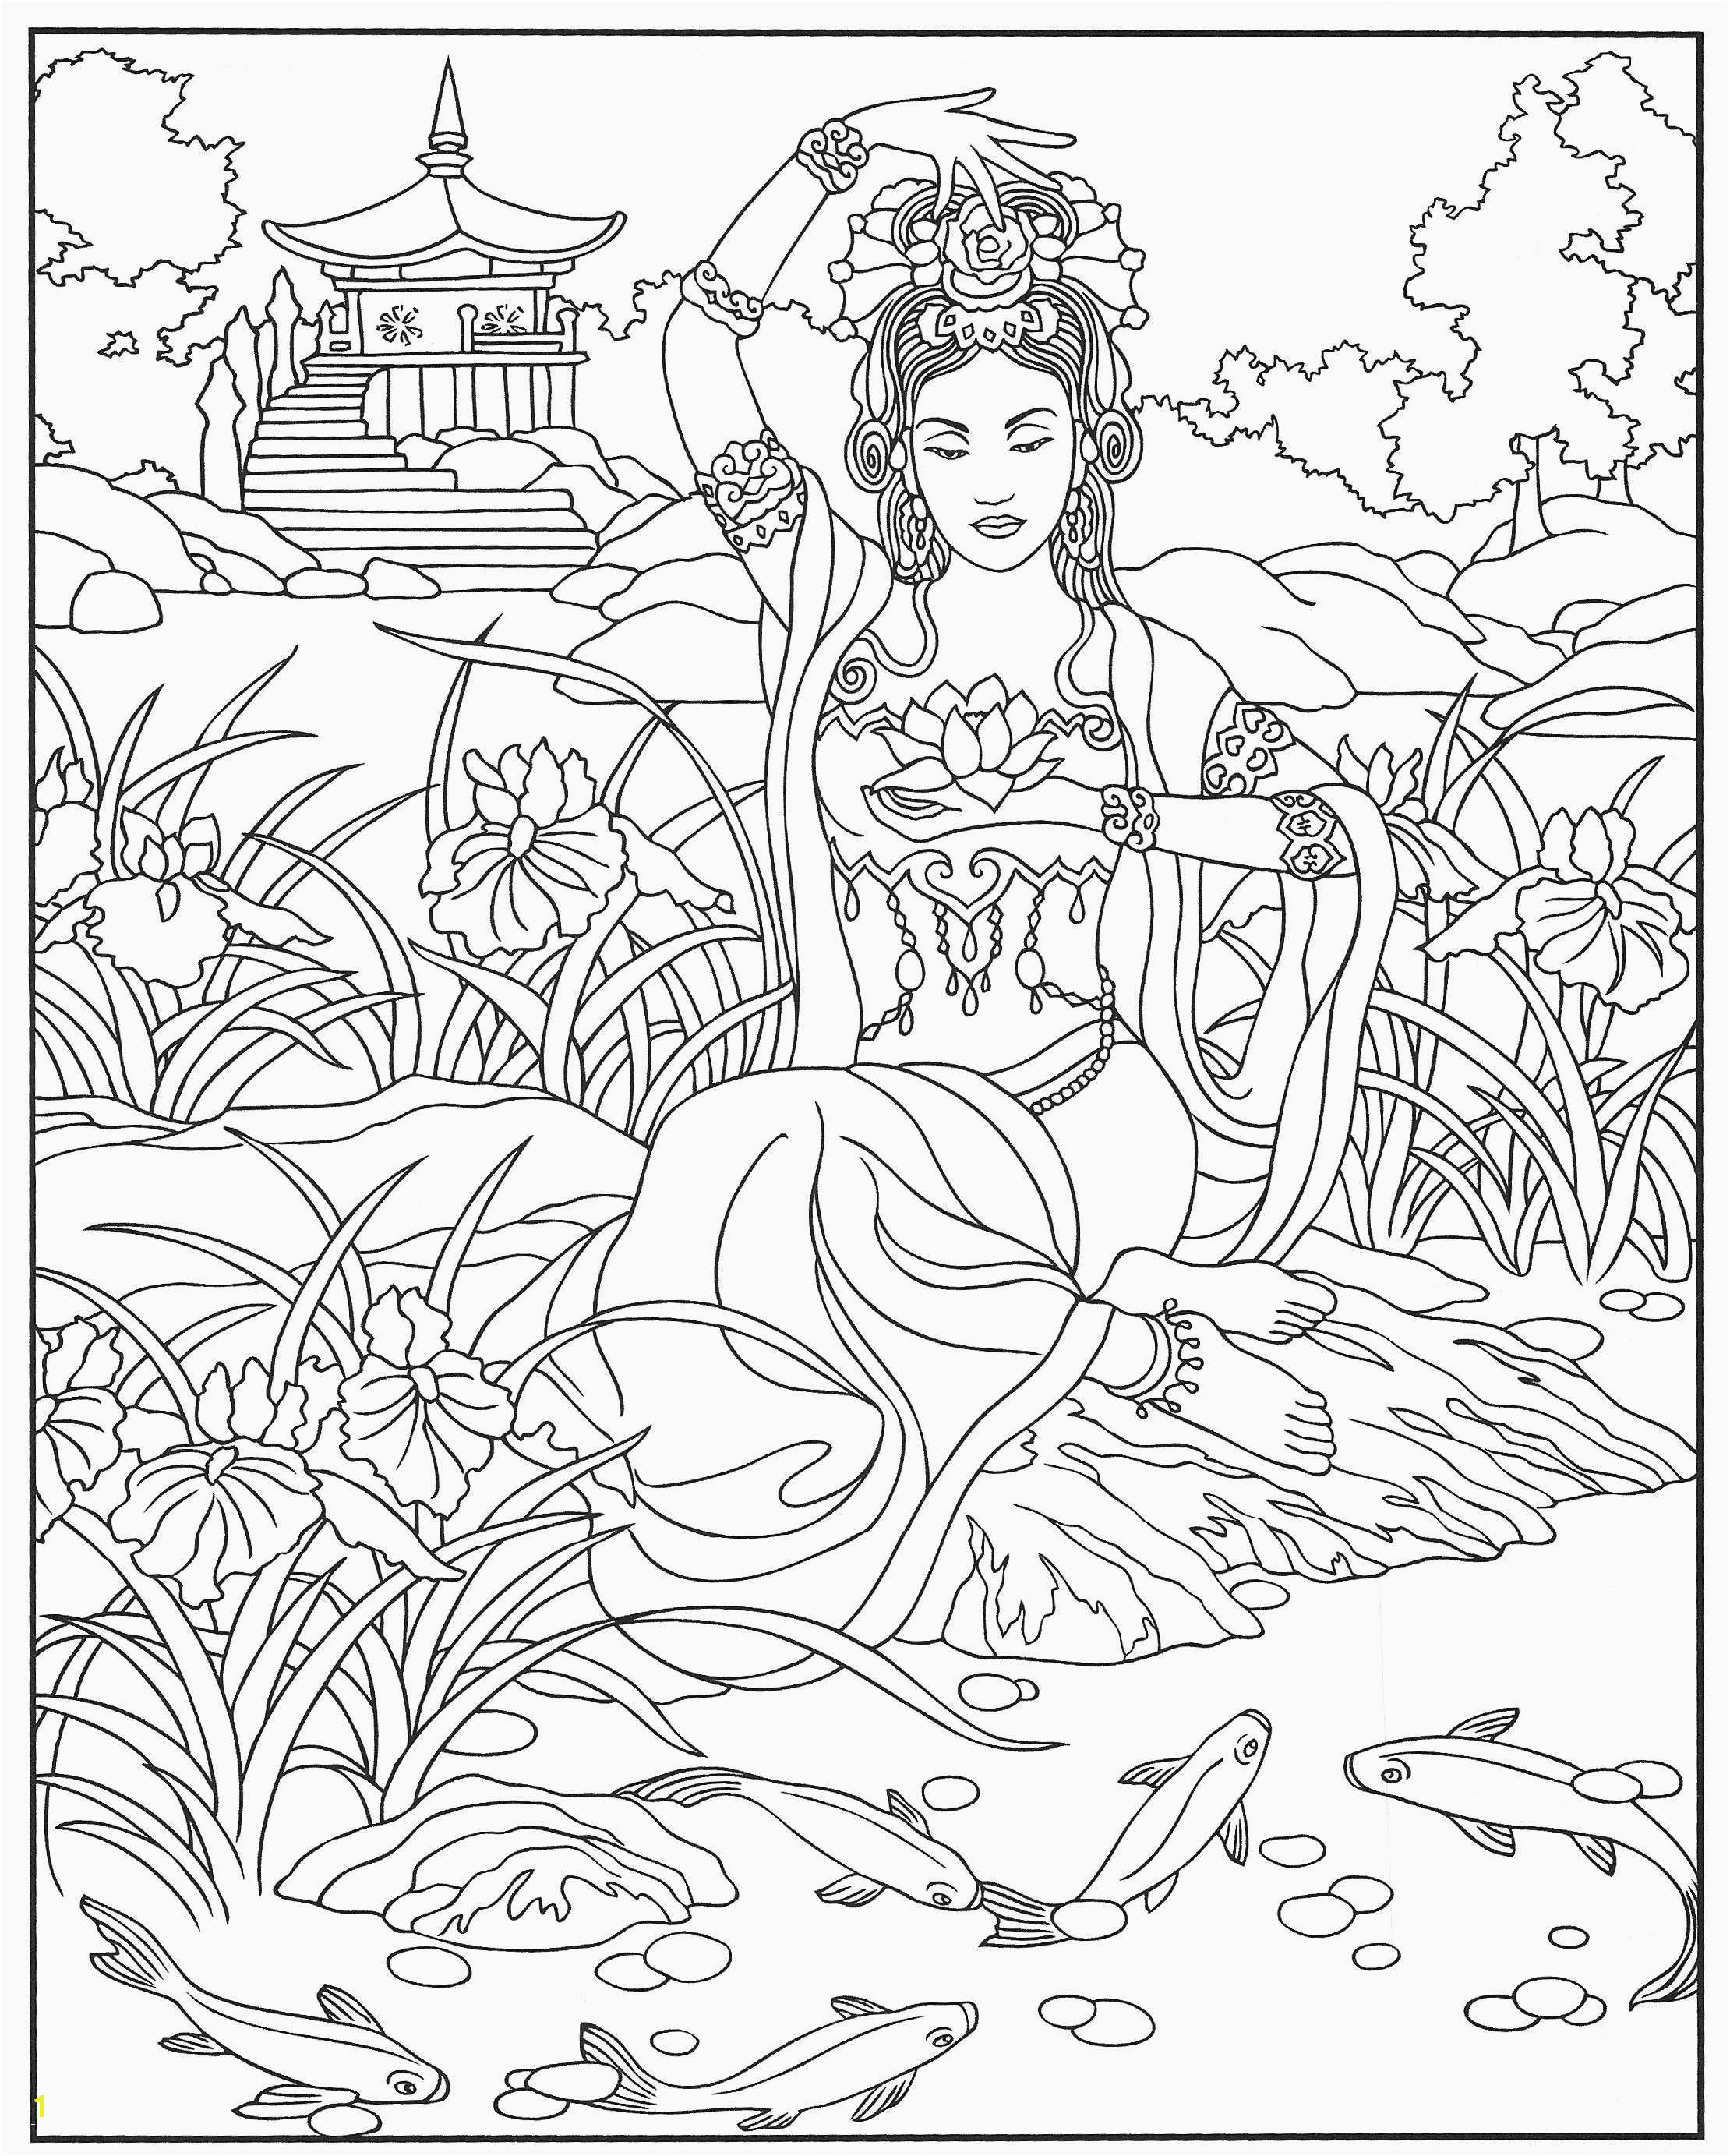 Coloring Games Adults Elegant Cool Coloring Page Unique Witch Coloring Pages New Crayola Pages 0d